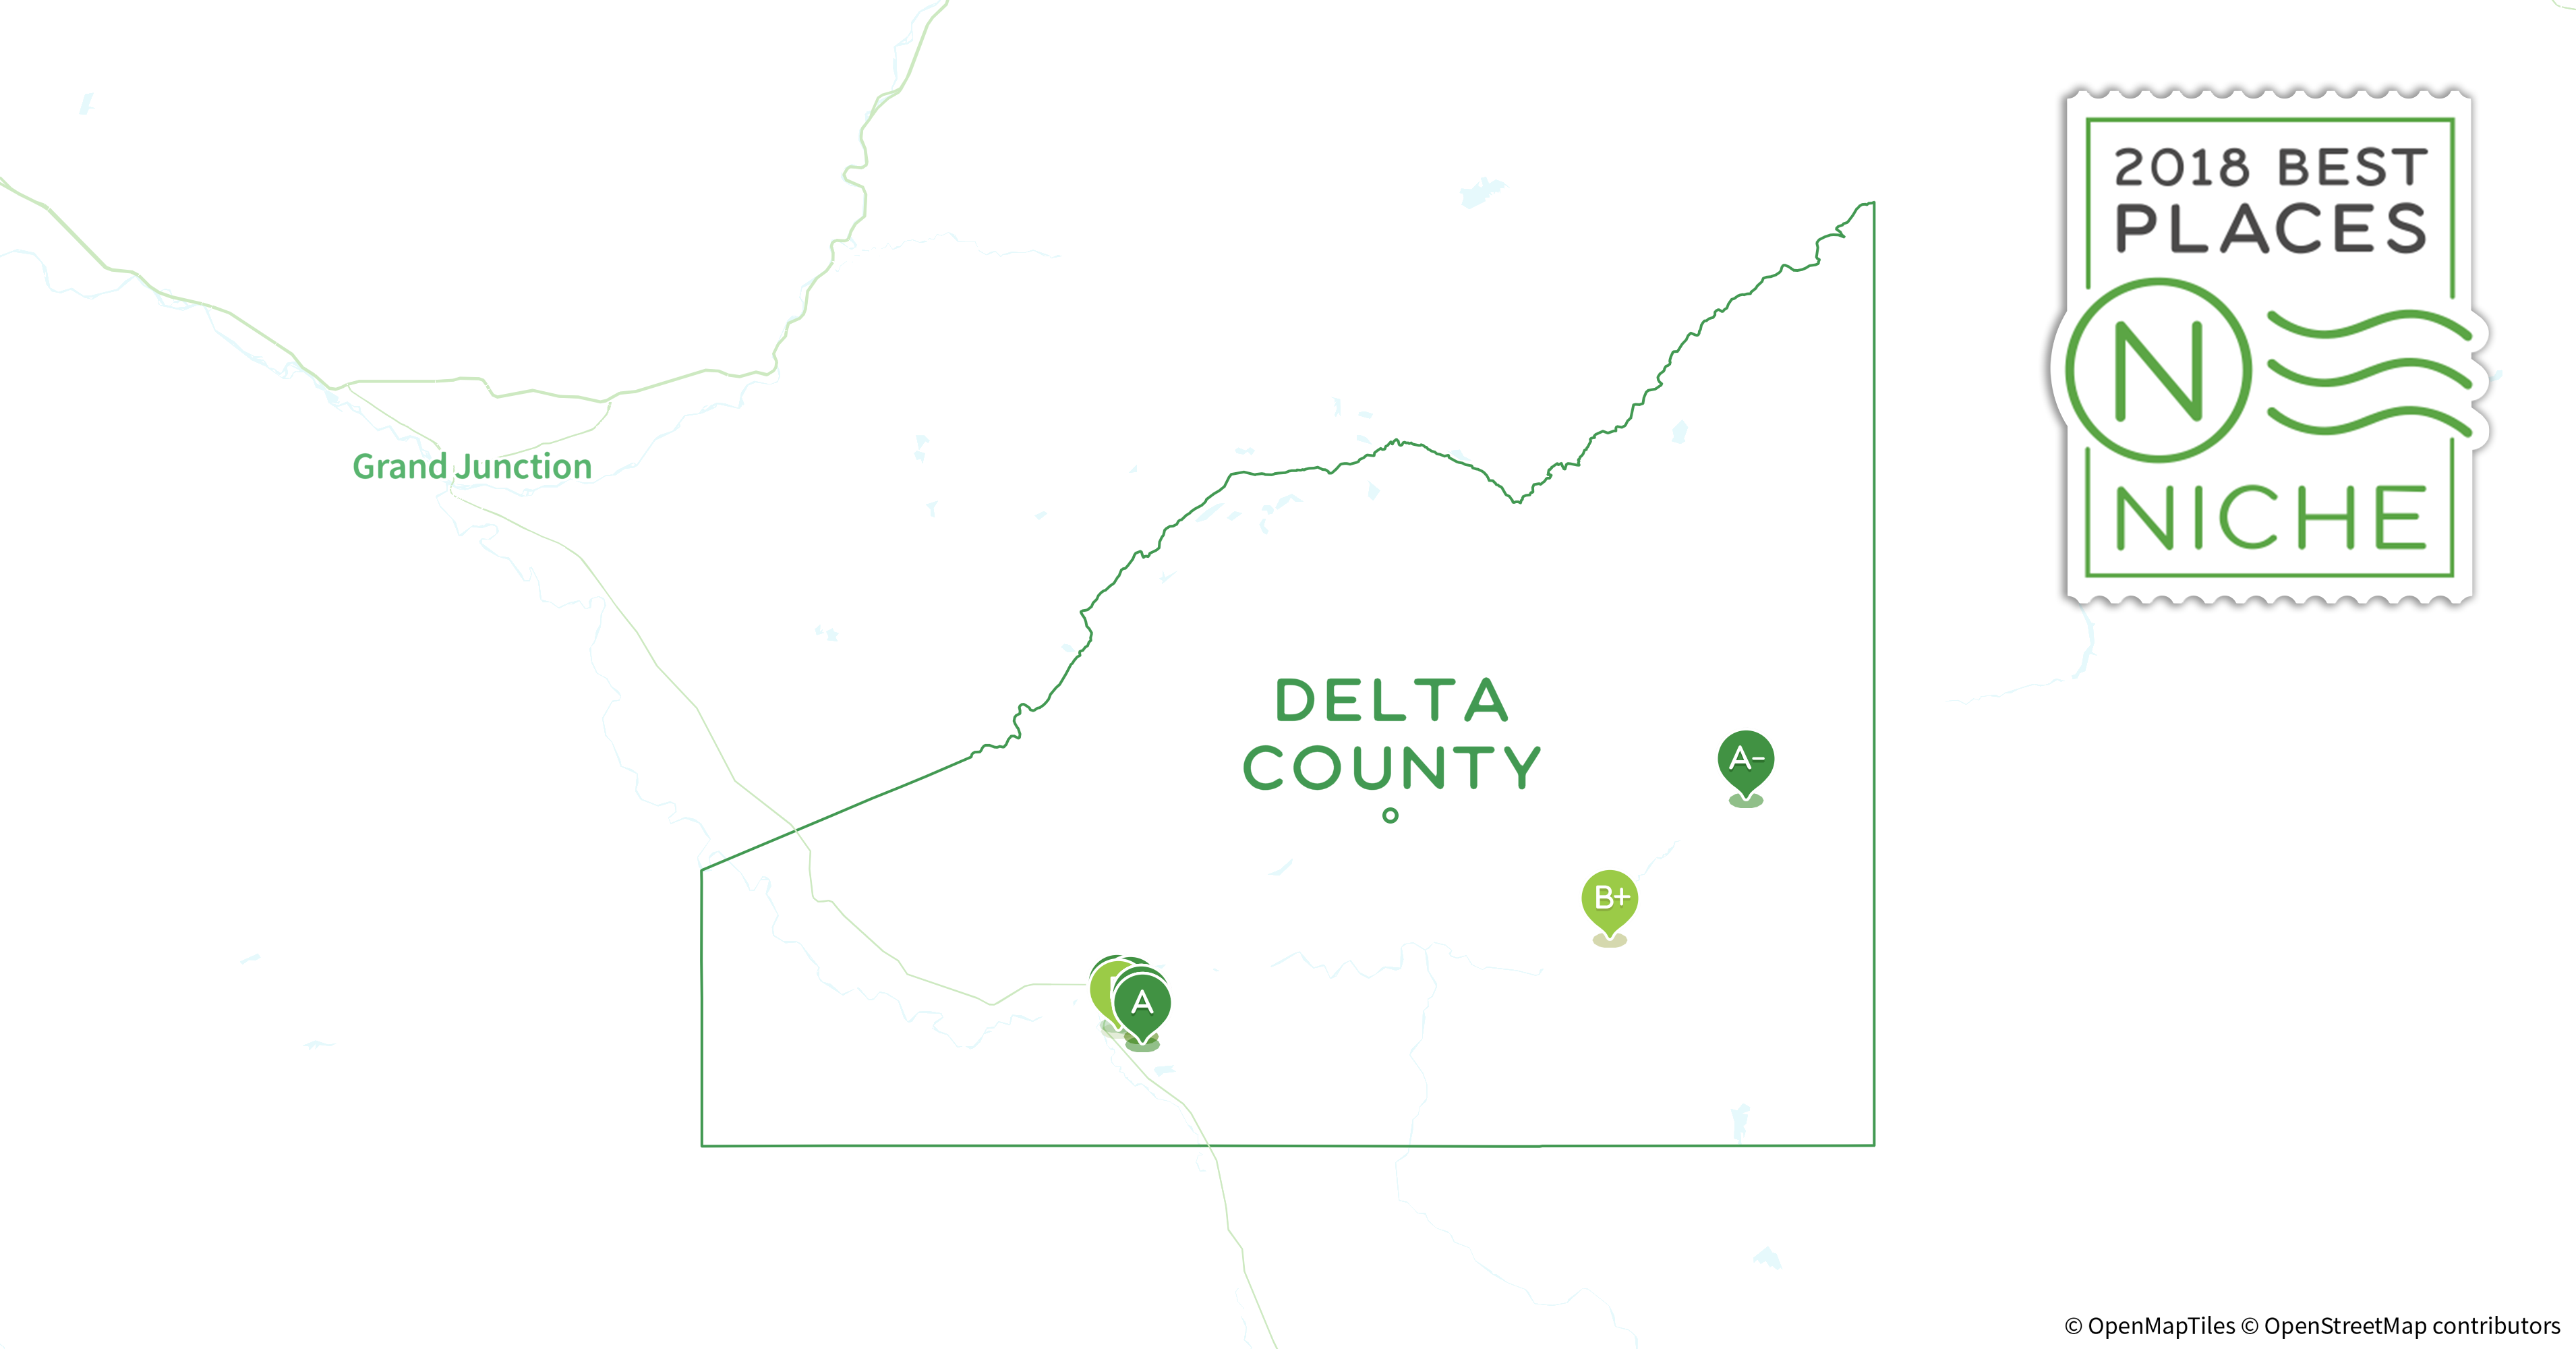 Delta County Colorado Map.2018 Best Places To Buy A House In Delta County Co Niche